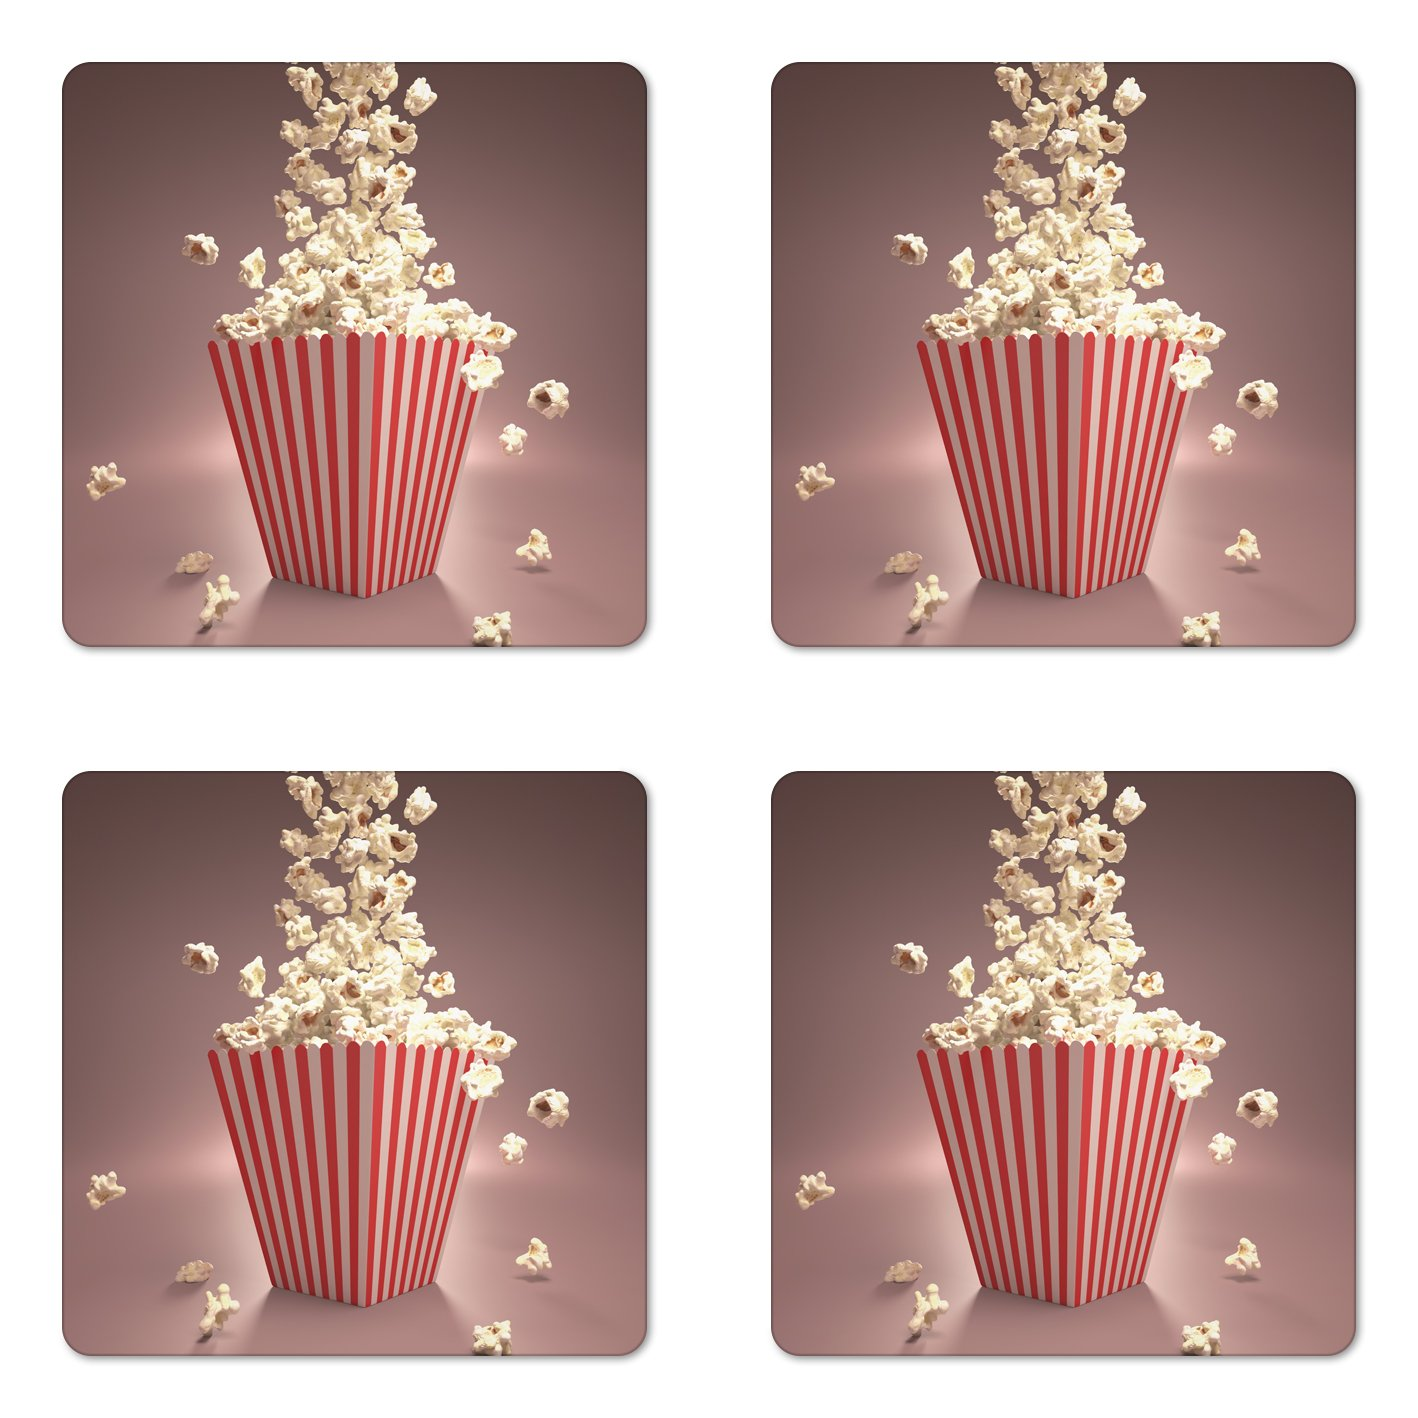 Lunarable Retro Coaster Set of Four, Retro Style Popcorn Art Image Cinema Movie Theater Theme in Classical Display, Square Hardboard Gloss Coasters for Drinks, Light Red White